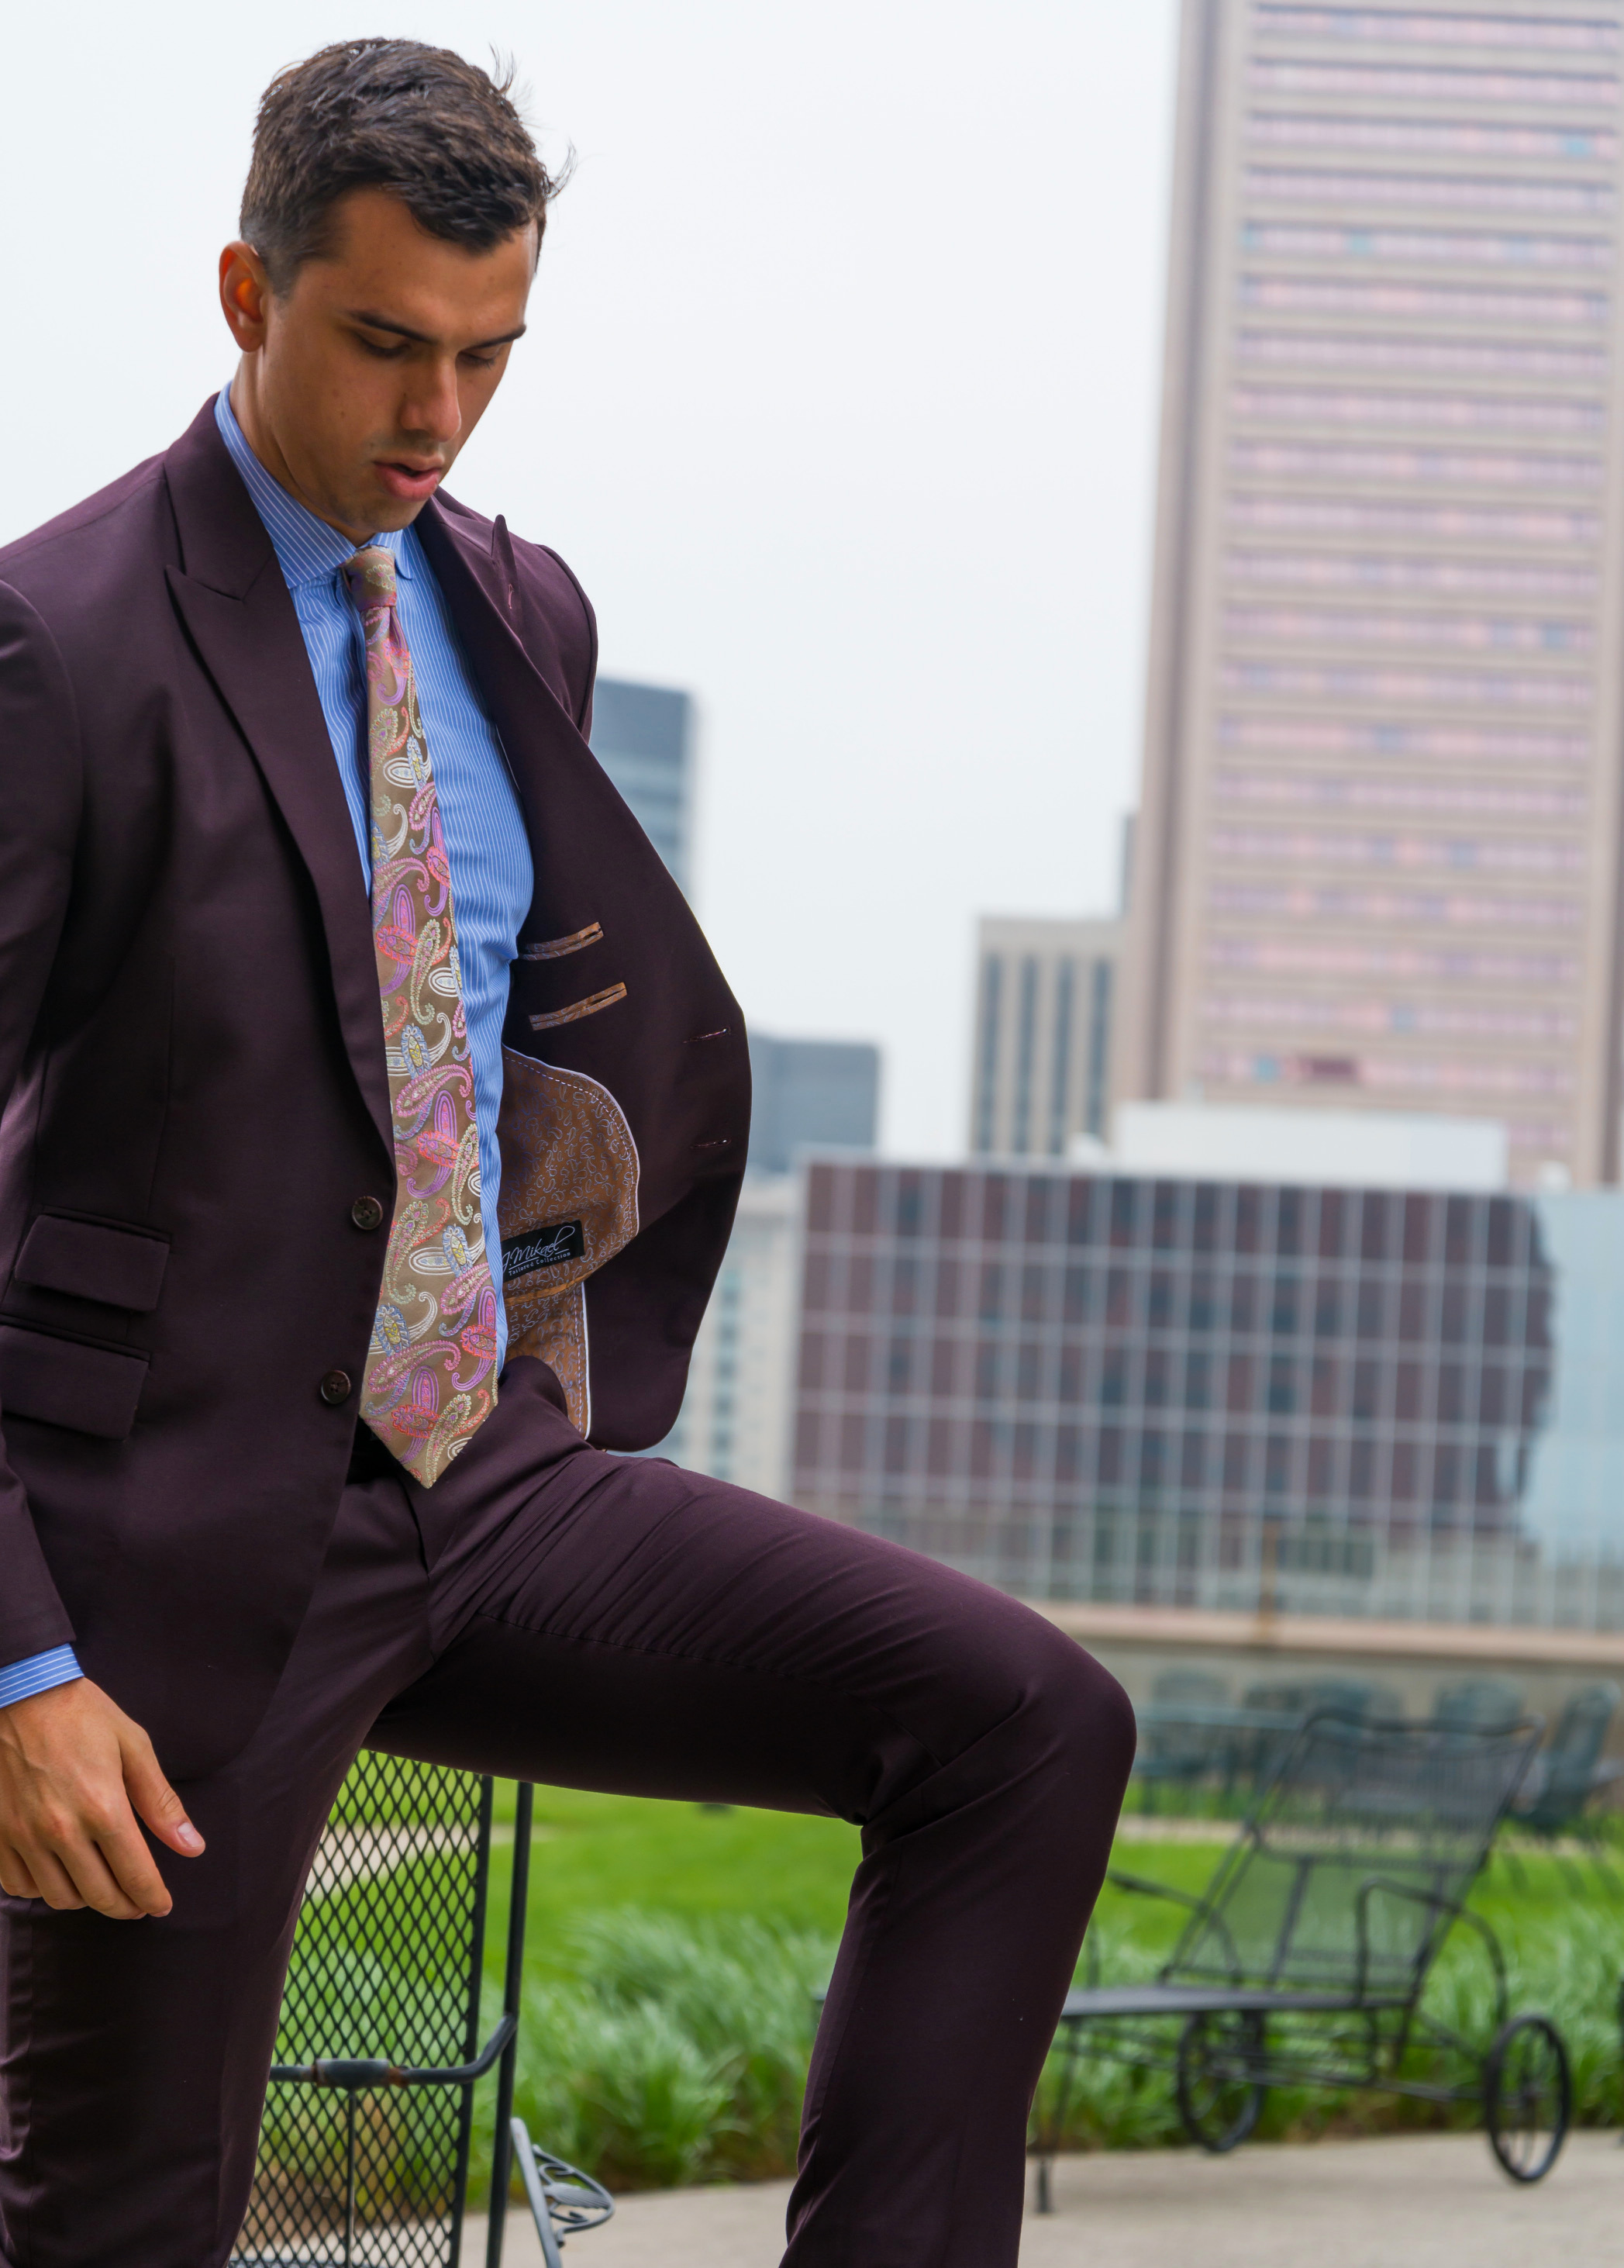 Custom Fit・Style・Service   Tailored suits and shirts designed to fit you; not the rack.     SCHEDULE A FITTING